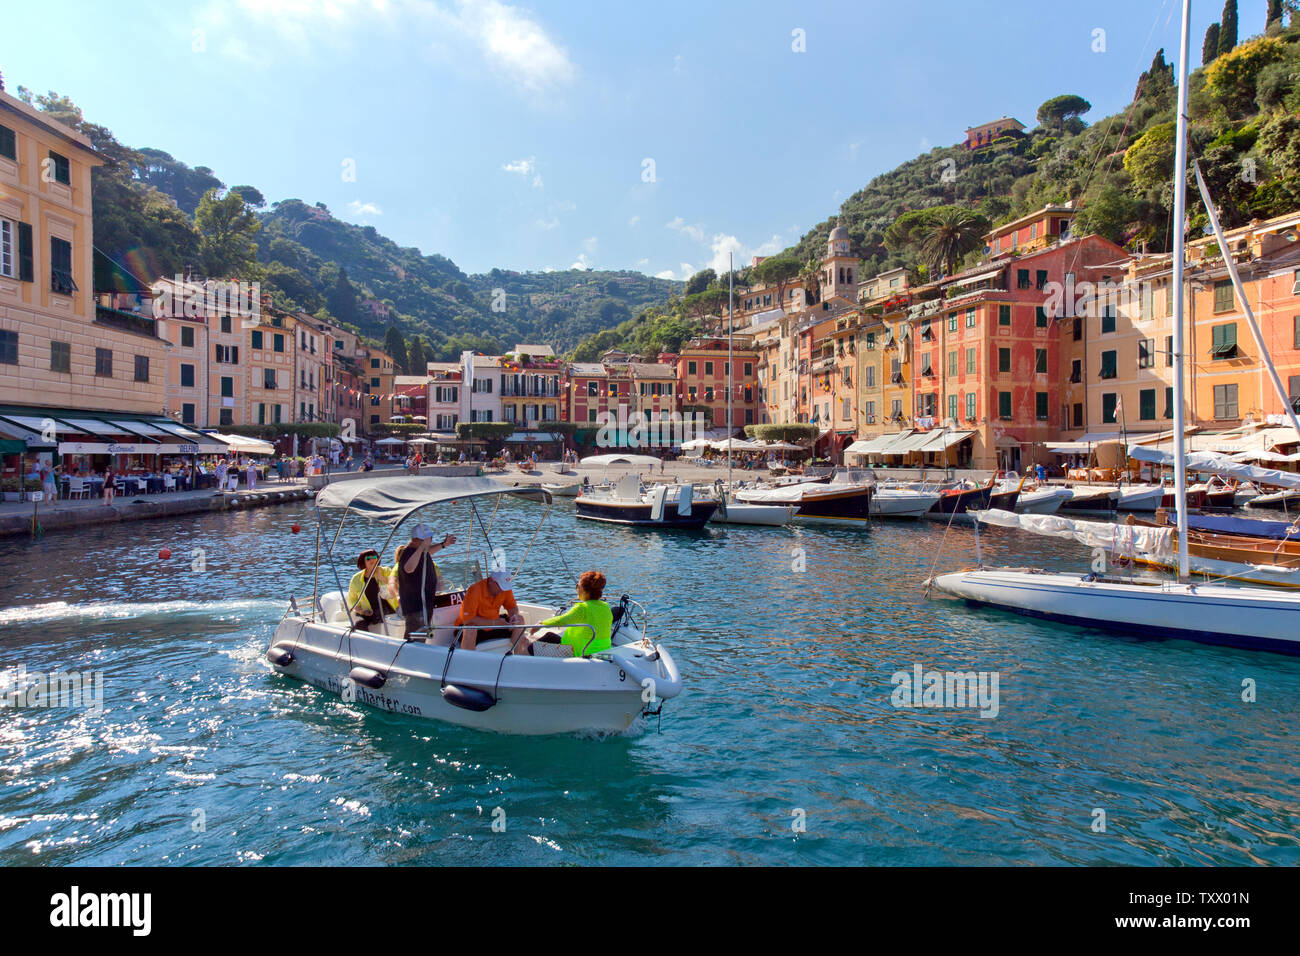 This Italian fishing village and holiday resort is famous for its picturesque harbour and historical association with celebrity and artistic visitors. - Stock Image